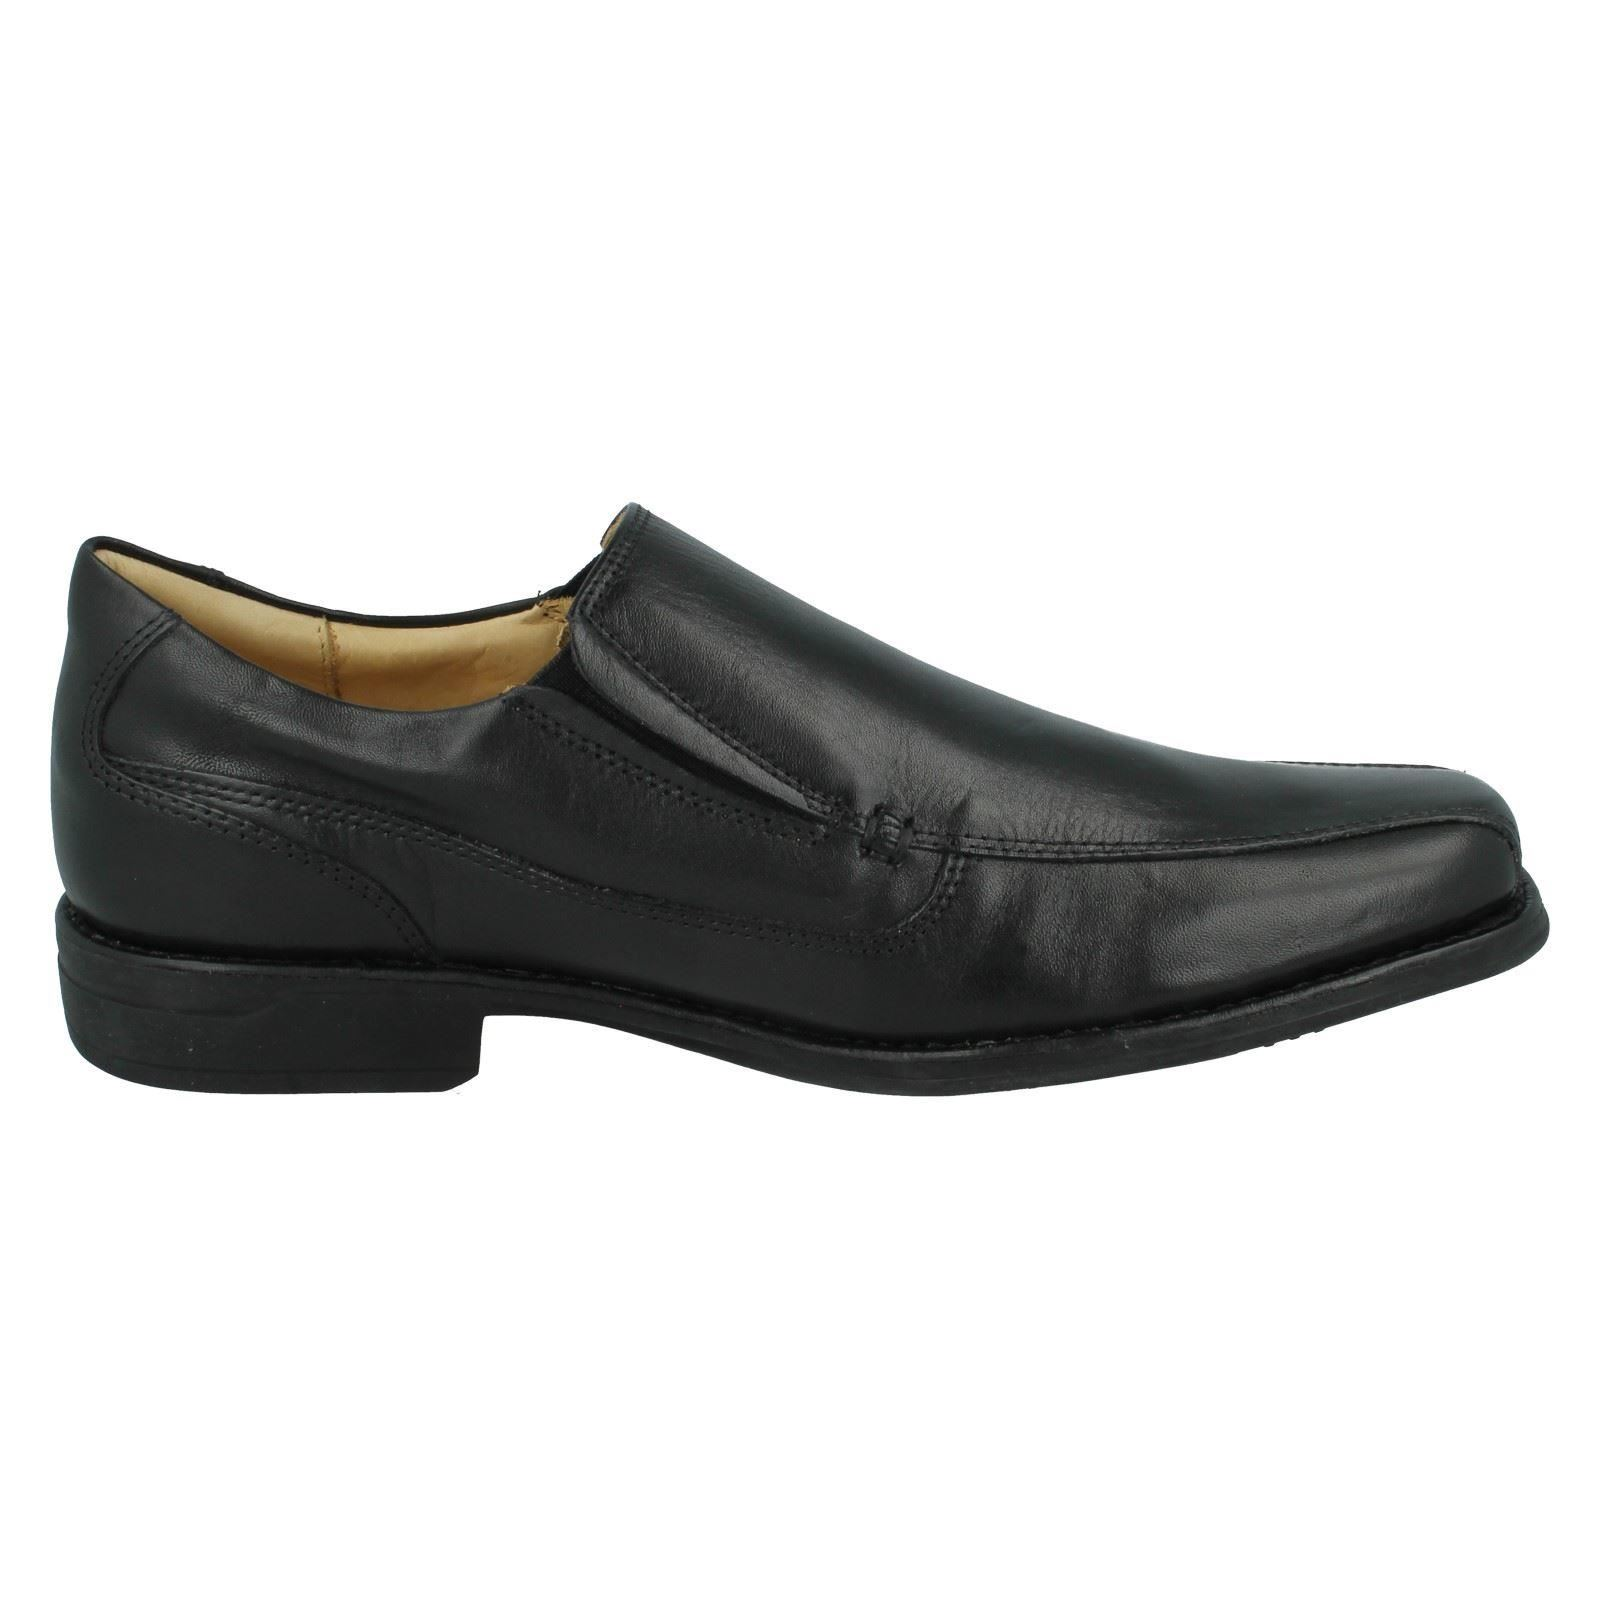 Shoes Anatomic Formal Leather Co Black Touch Poloni The Style Mens amp; XgwqtRaXd